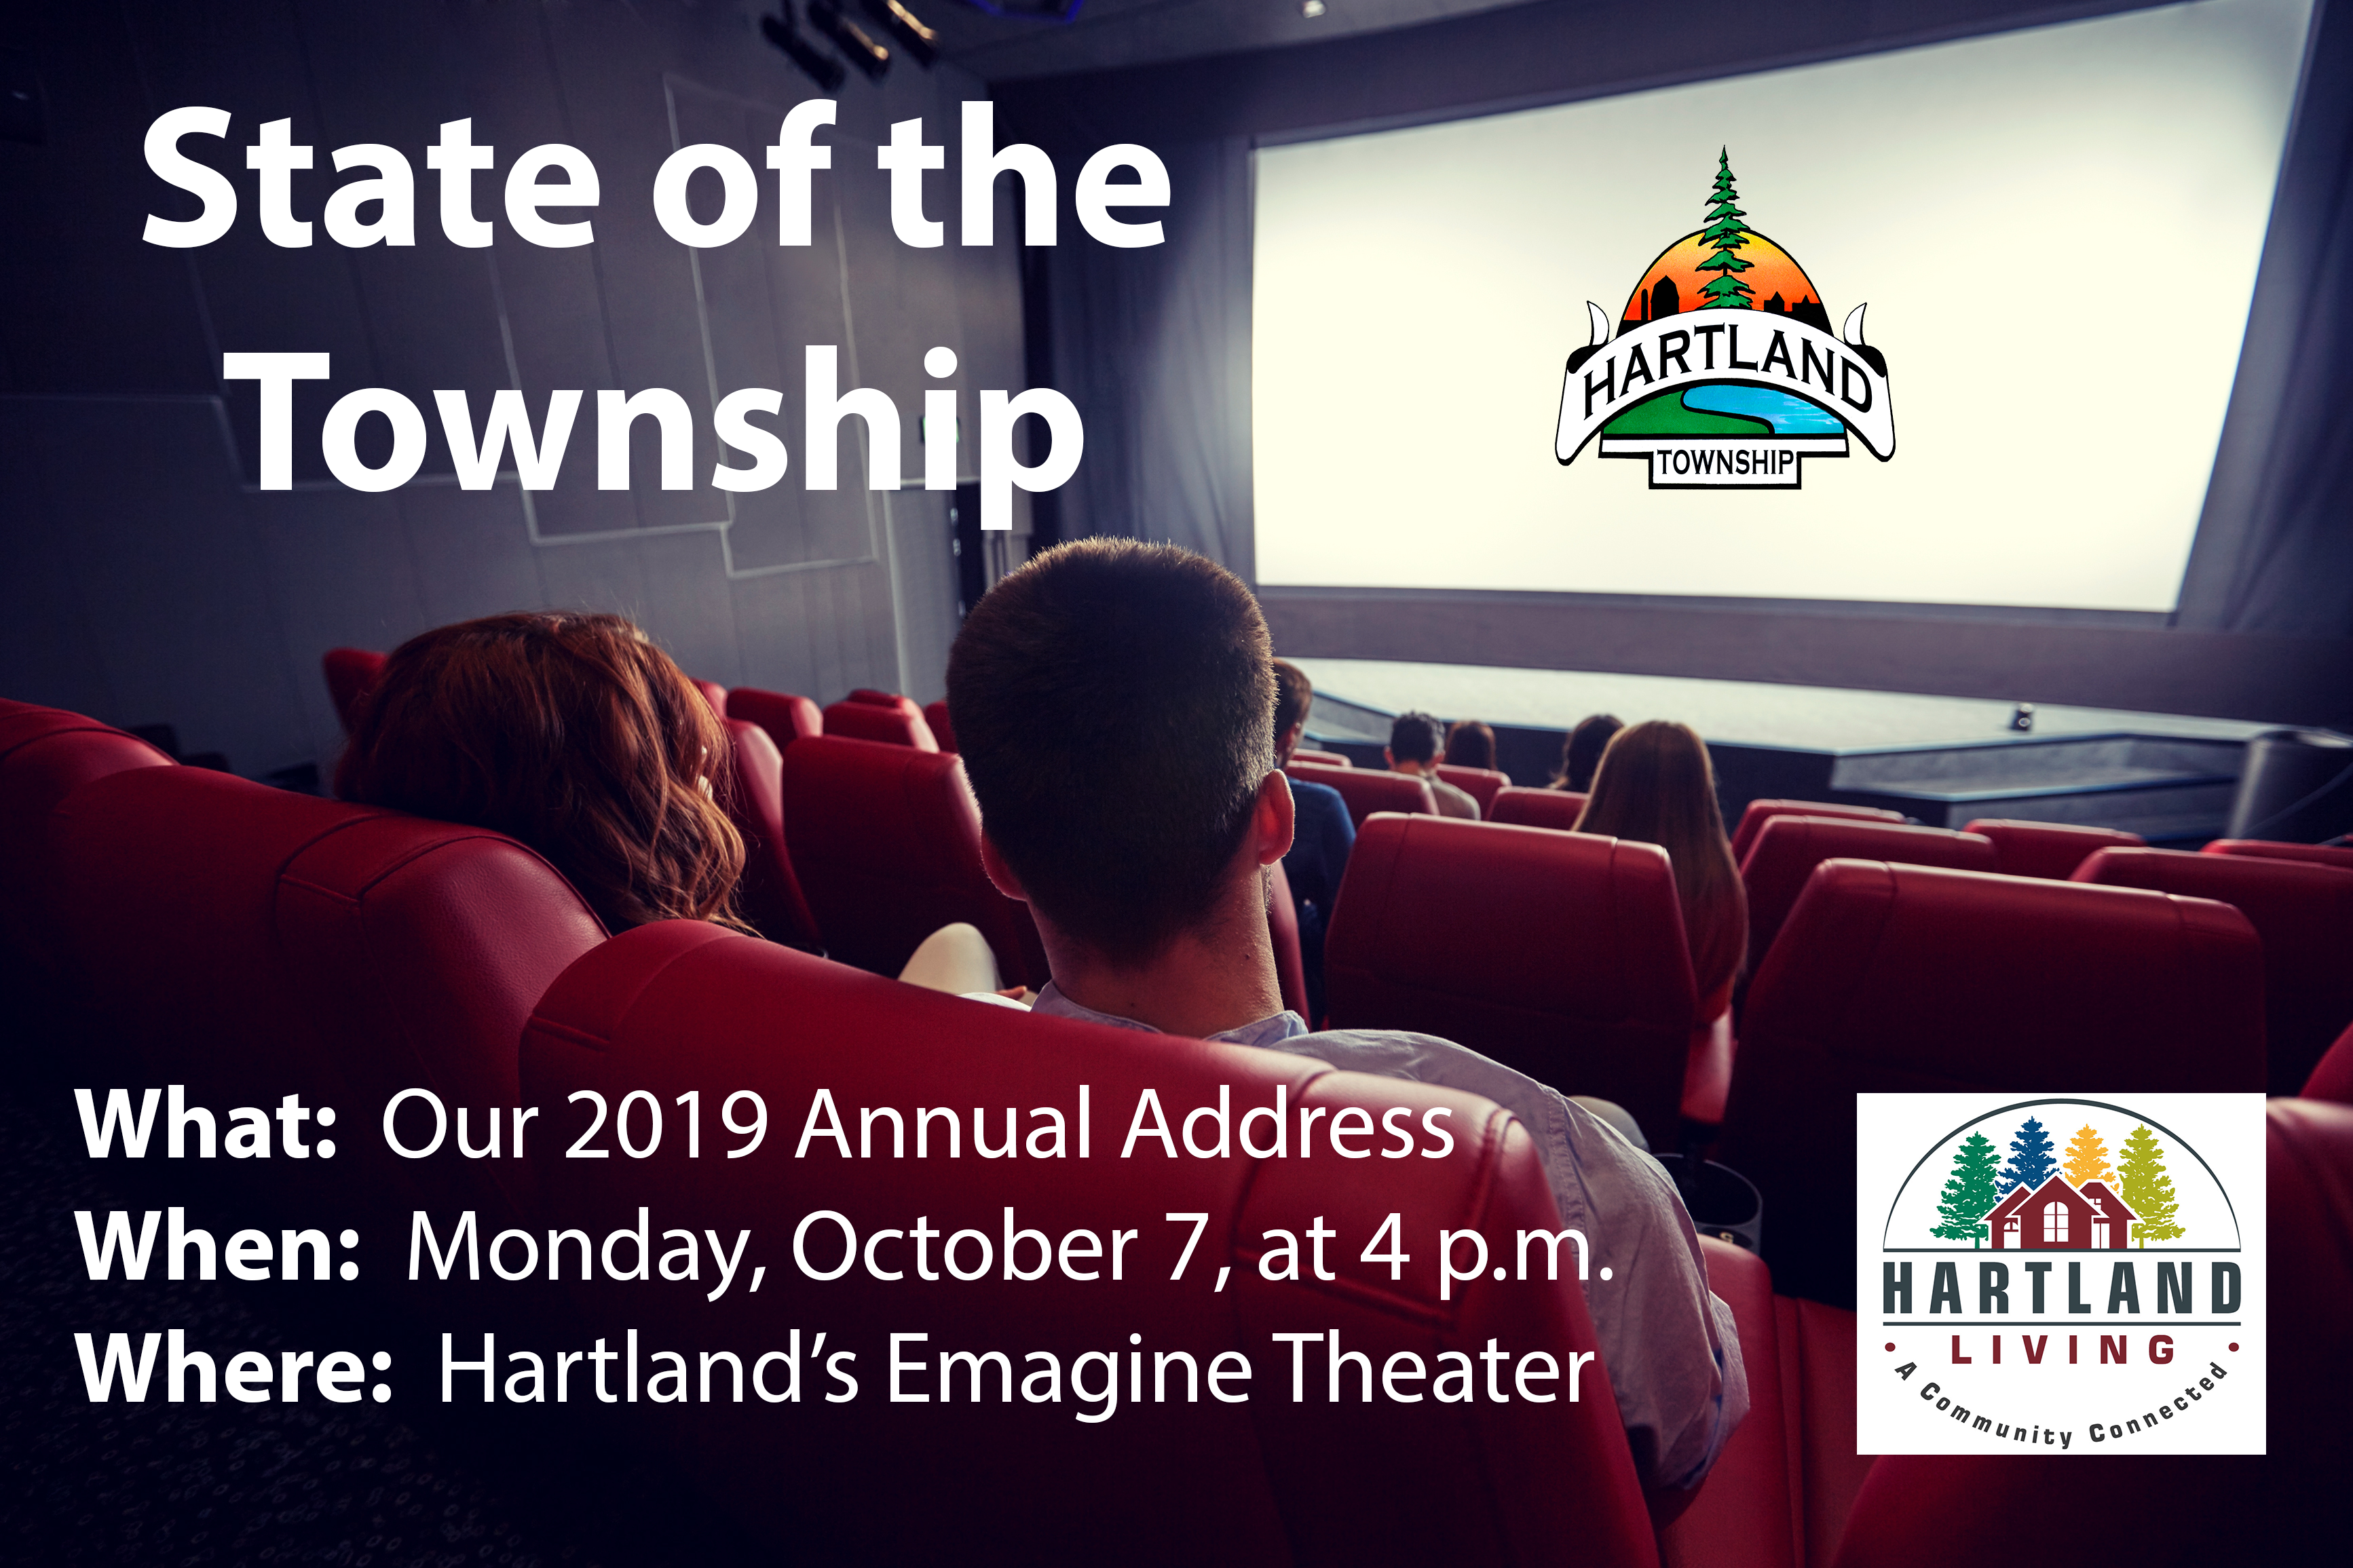 State of the Township Address to be Held at Emagine Theater